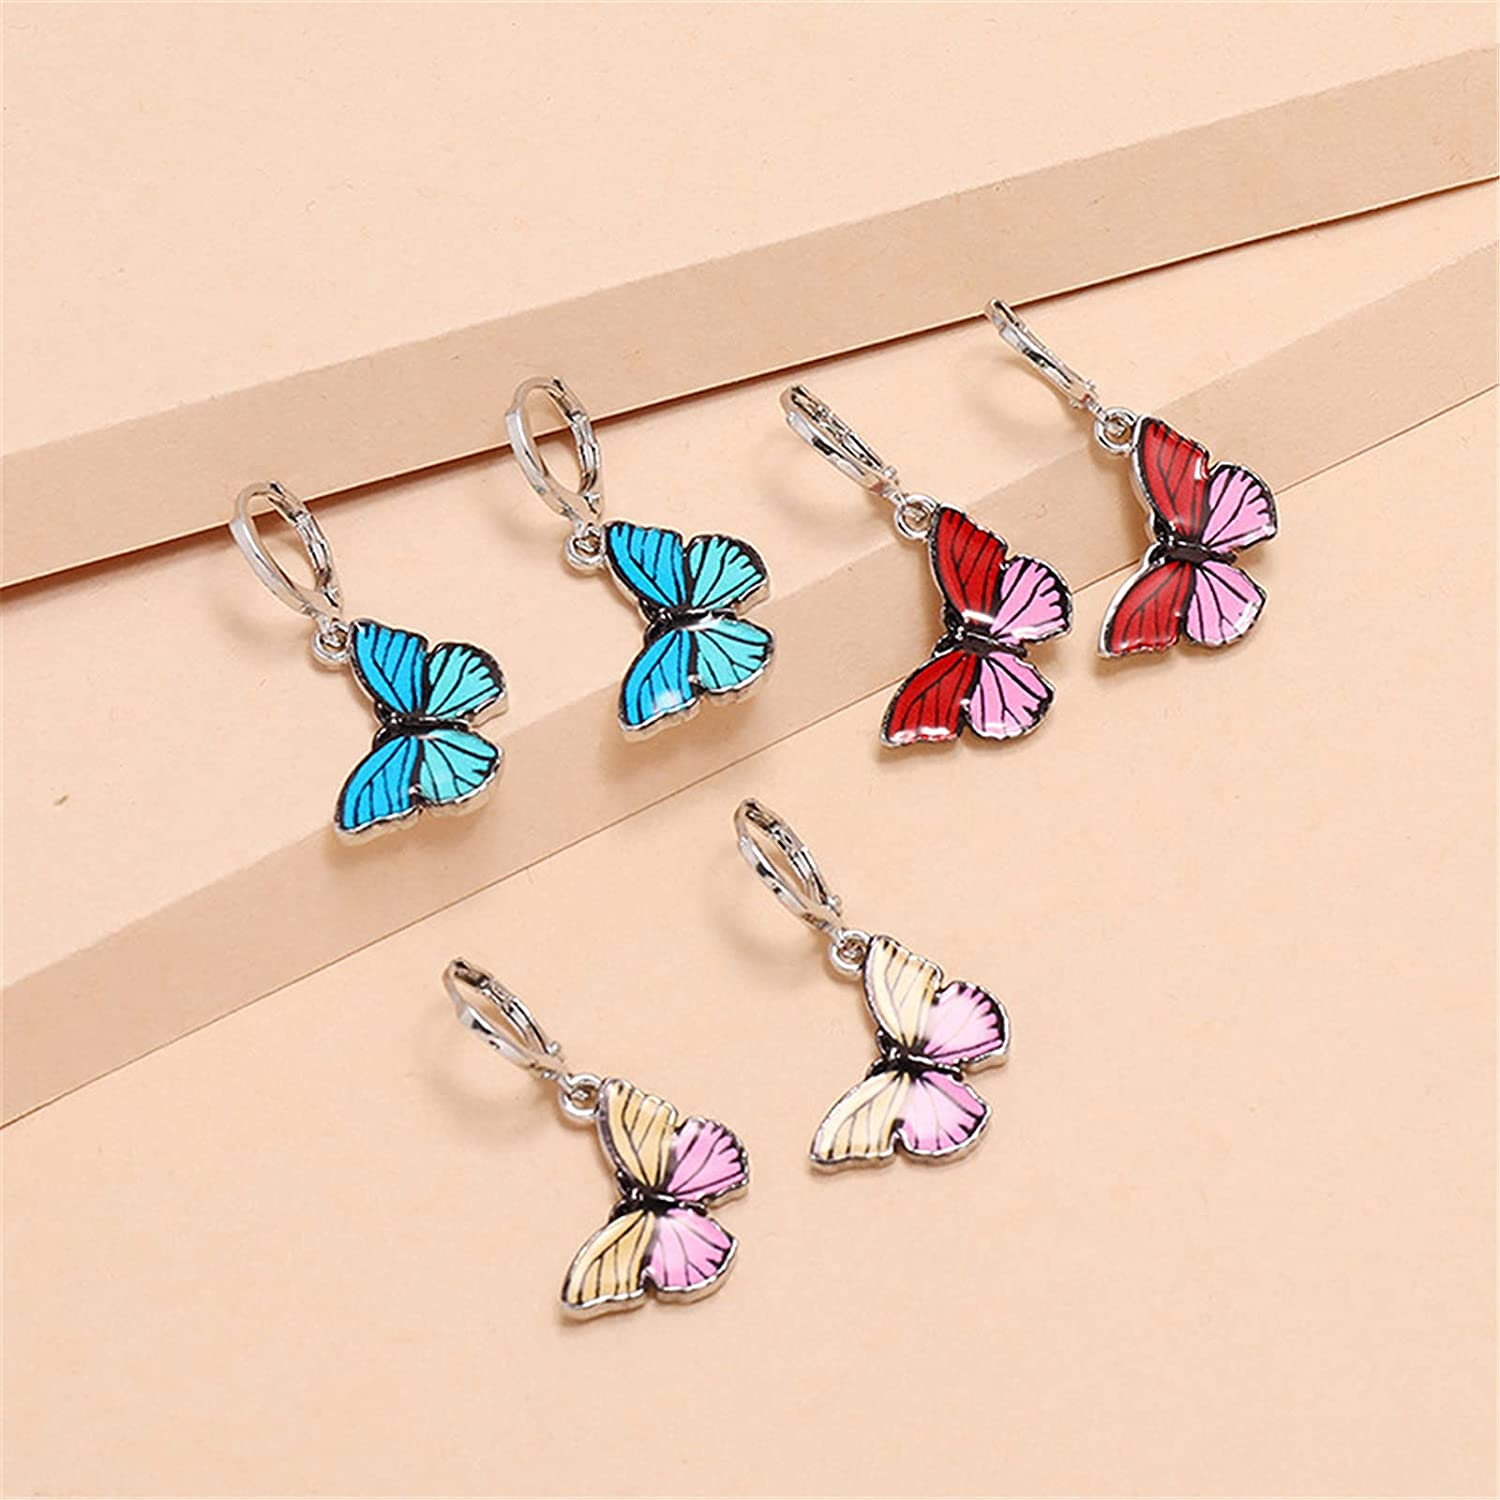 ONLYJUMP 2 Sets Butterfly Choker Necklace Earrings for Women Ladies Girls Colorful Charm Cute Elegant Unique Handmade Drop Dangle Earrings Jewelry Christmas